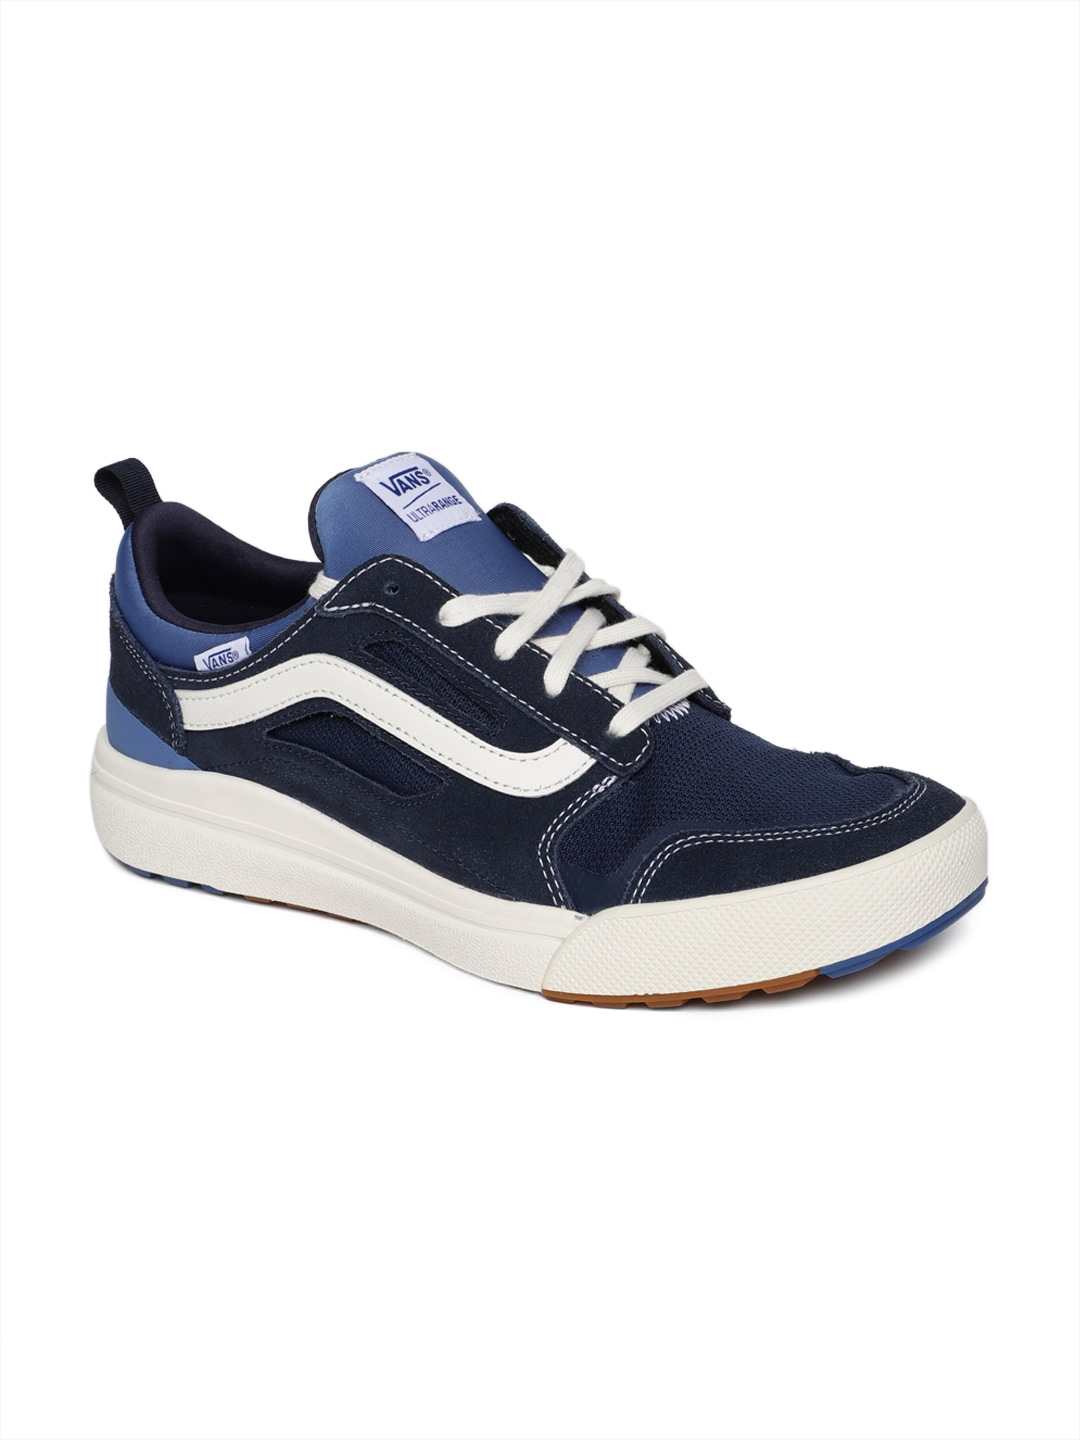 2d634237ddc72f Men Footwear - Buy Mens Footwear   Shoes Online in India - Myntra